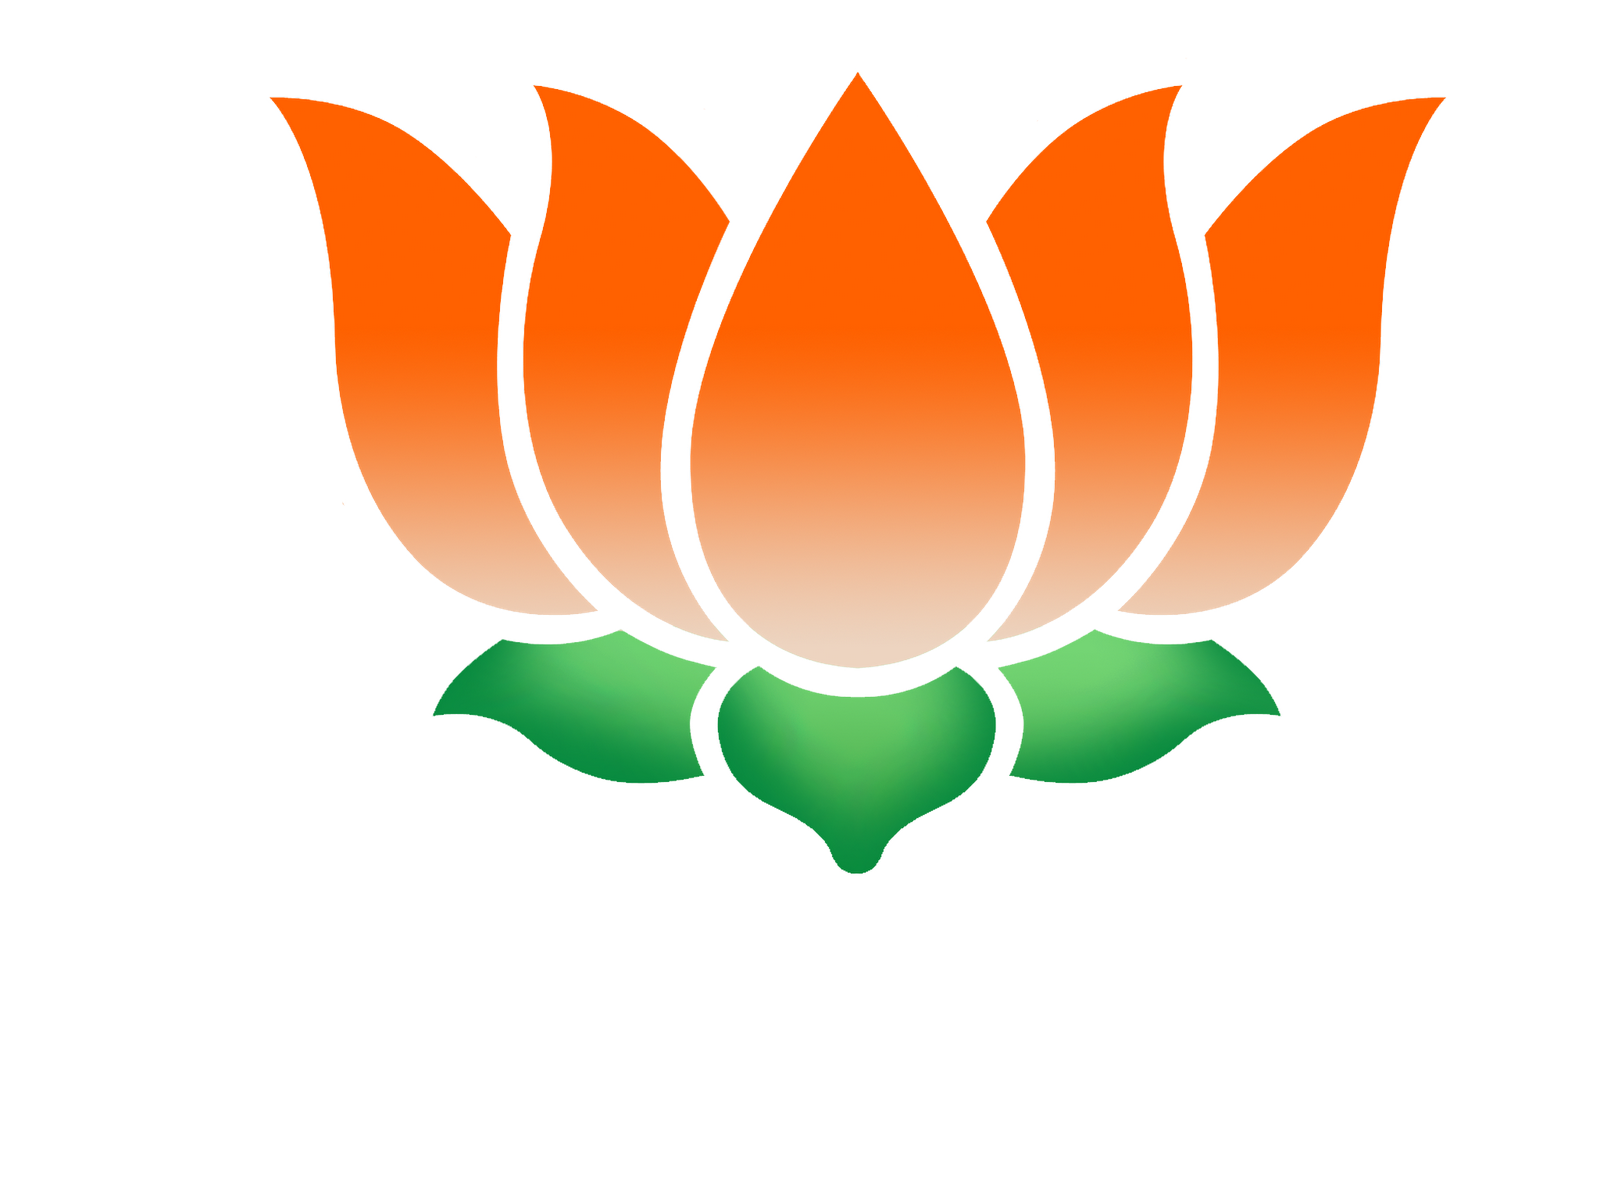 Lotus Flower Bjpps Lotus Symbol Gets A Bold Makeover Ch Amit